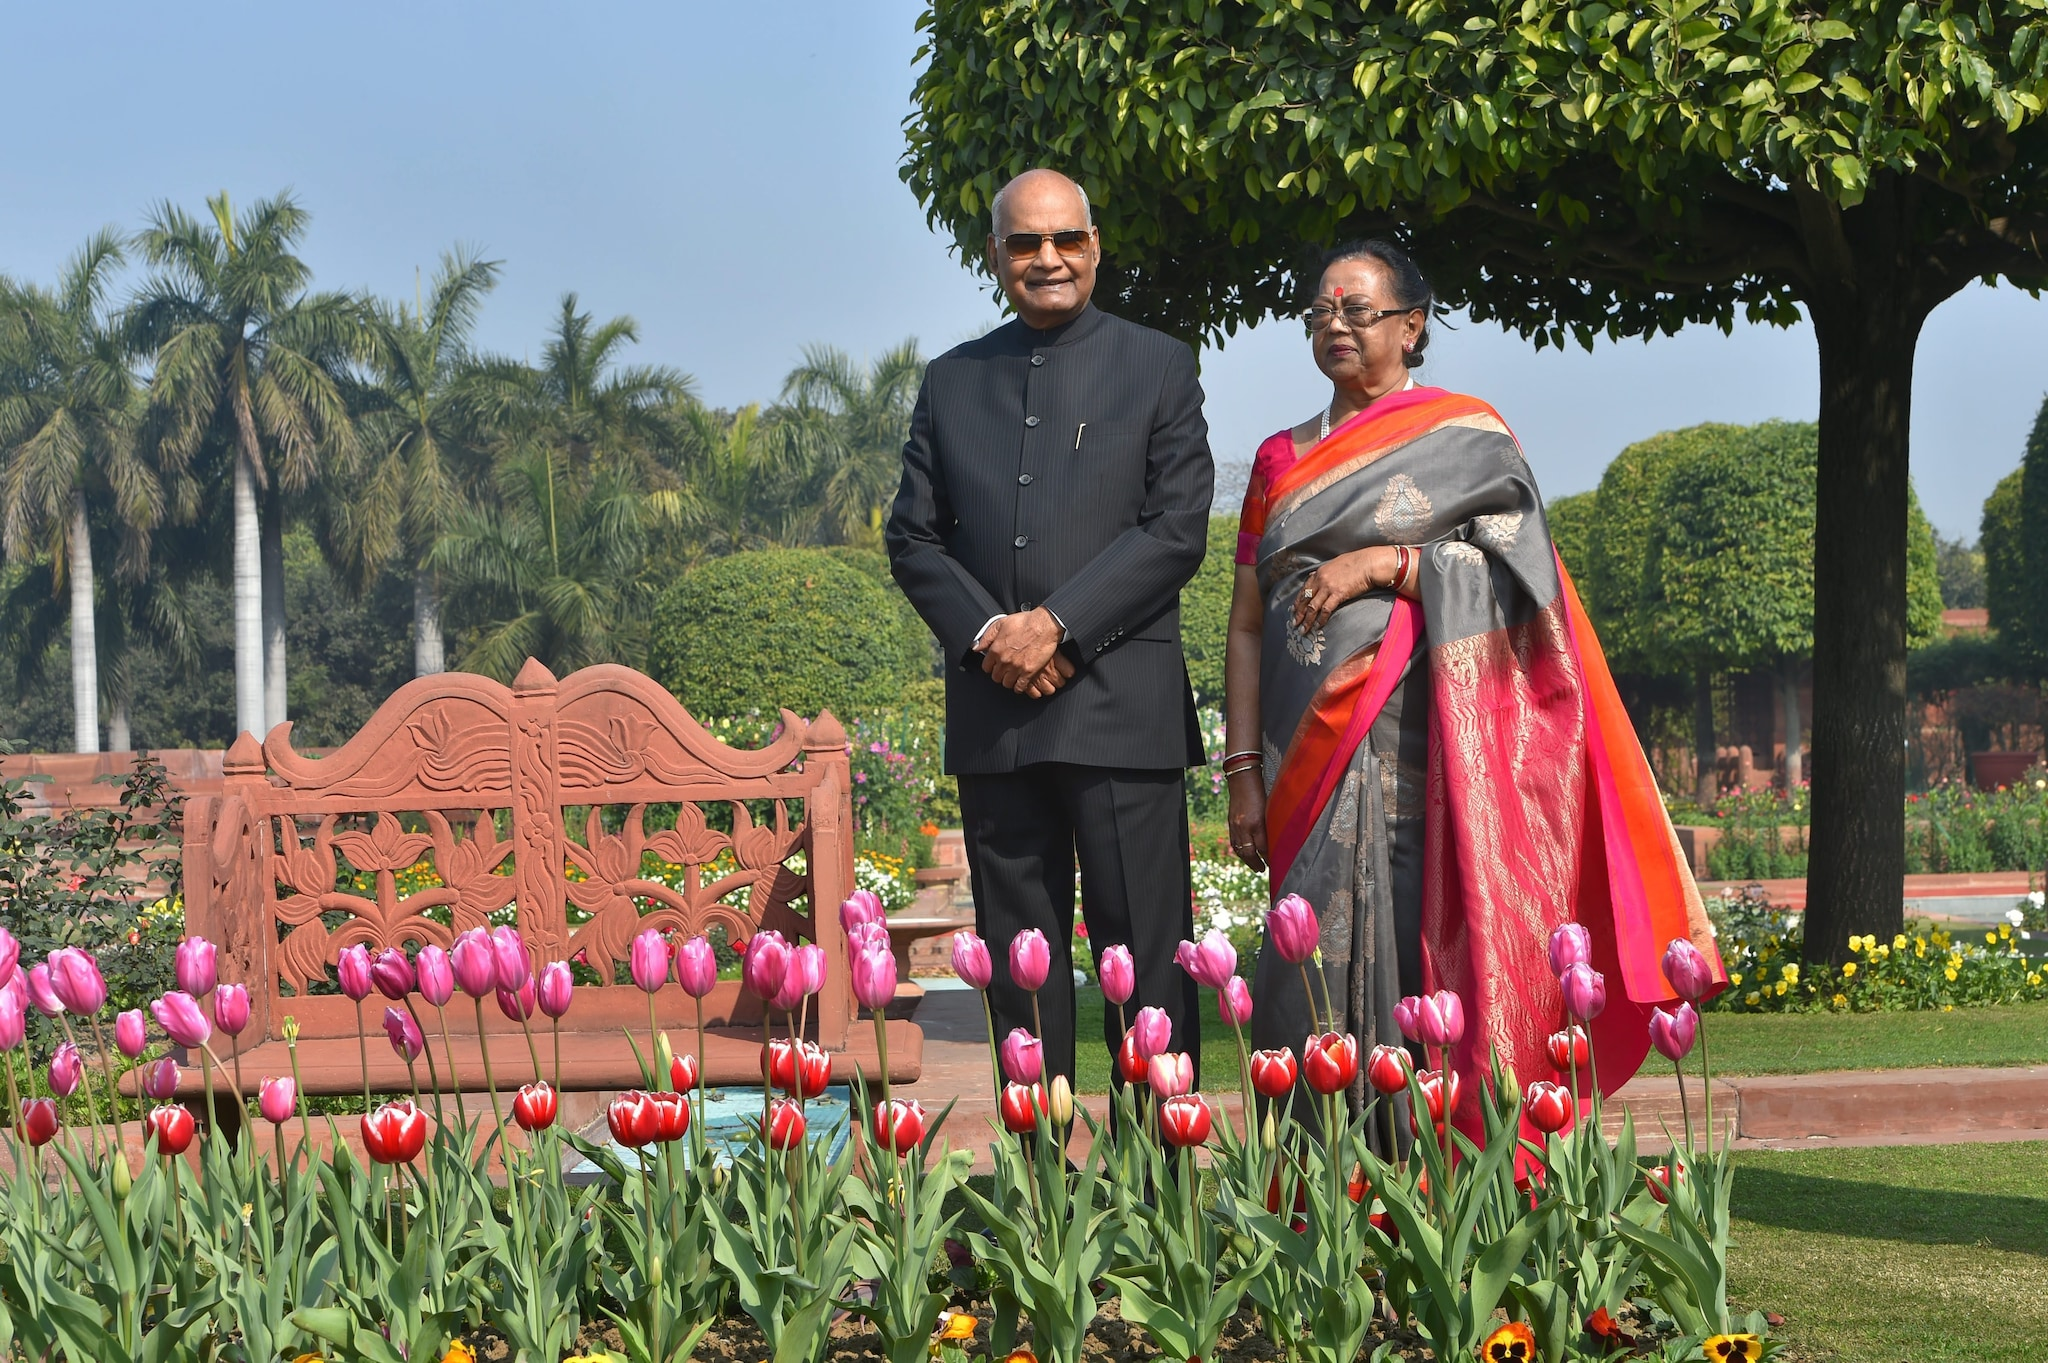 President Ram Nath Kovind and First Lady Savita Kovind pose for a photograph during a preview of the Mughal Gardens at Rashtrapati Bhavan in New Delhi, Monday, Feb. 04, 2019. The Mughal Gardens will open for the general public from Wednesday, Feb. 06 to March 10, 2019.